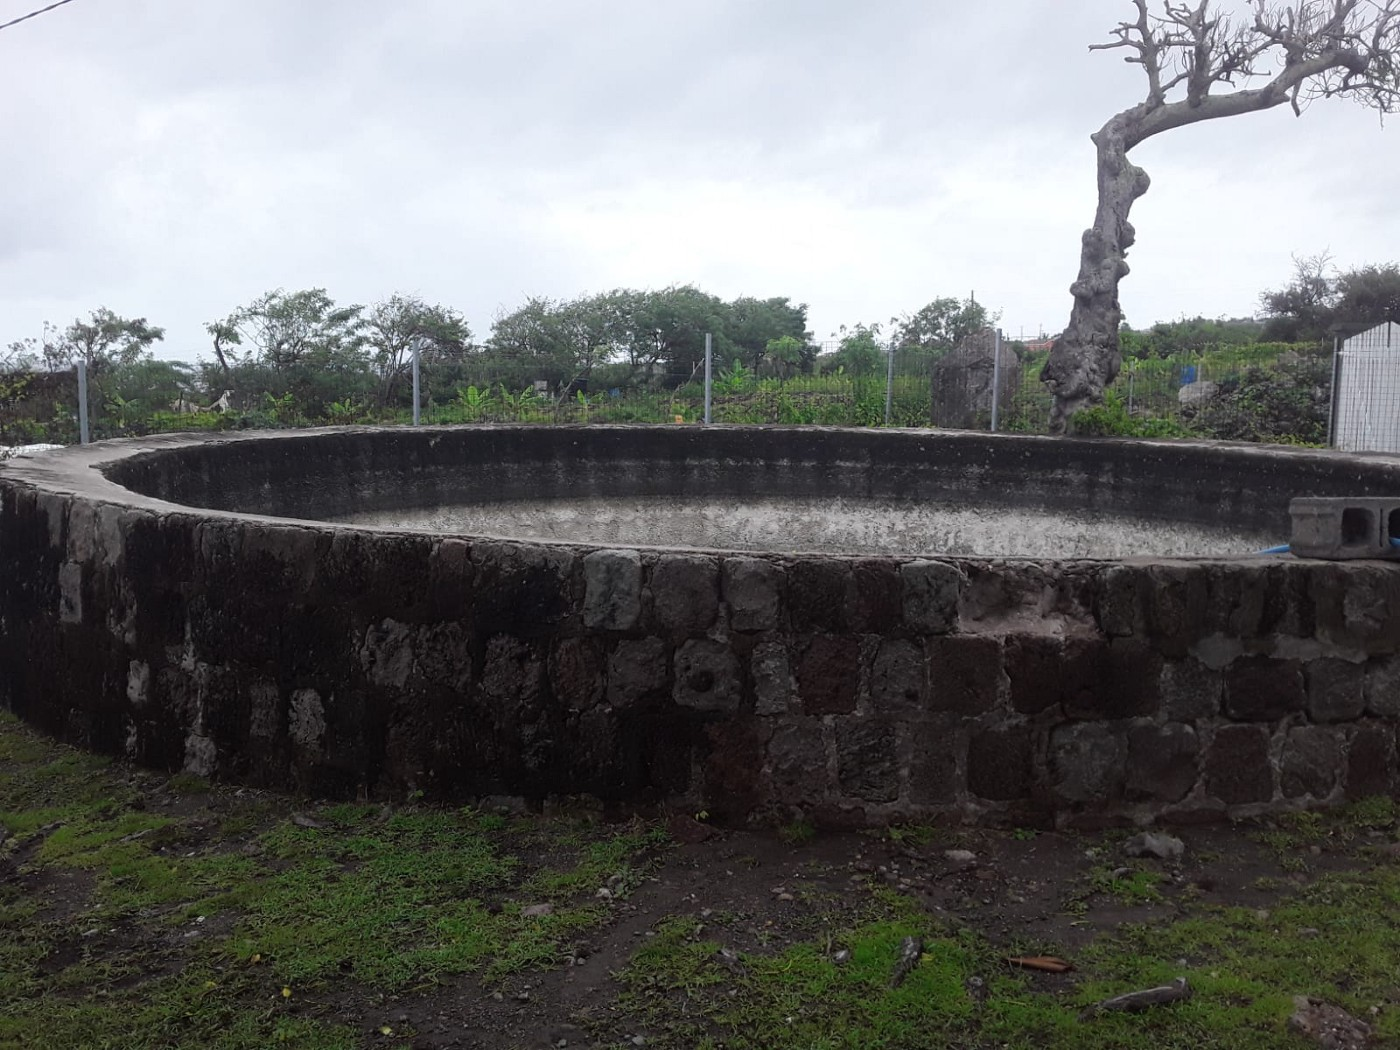 image of an old stone cistern that was used to store water in sugar plantations during slavery. In the background are the fields that once grew cane but is now pasture.